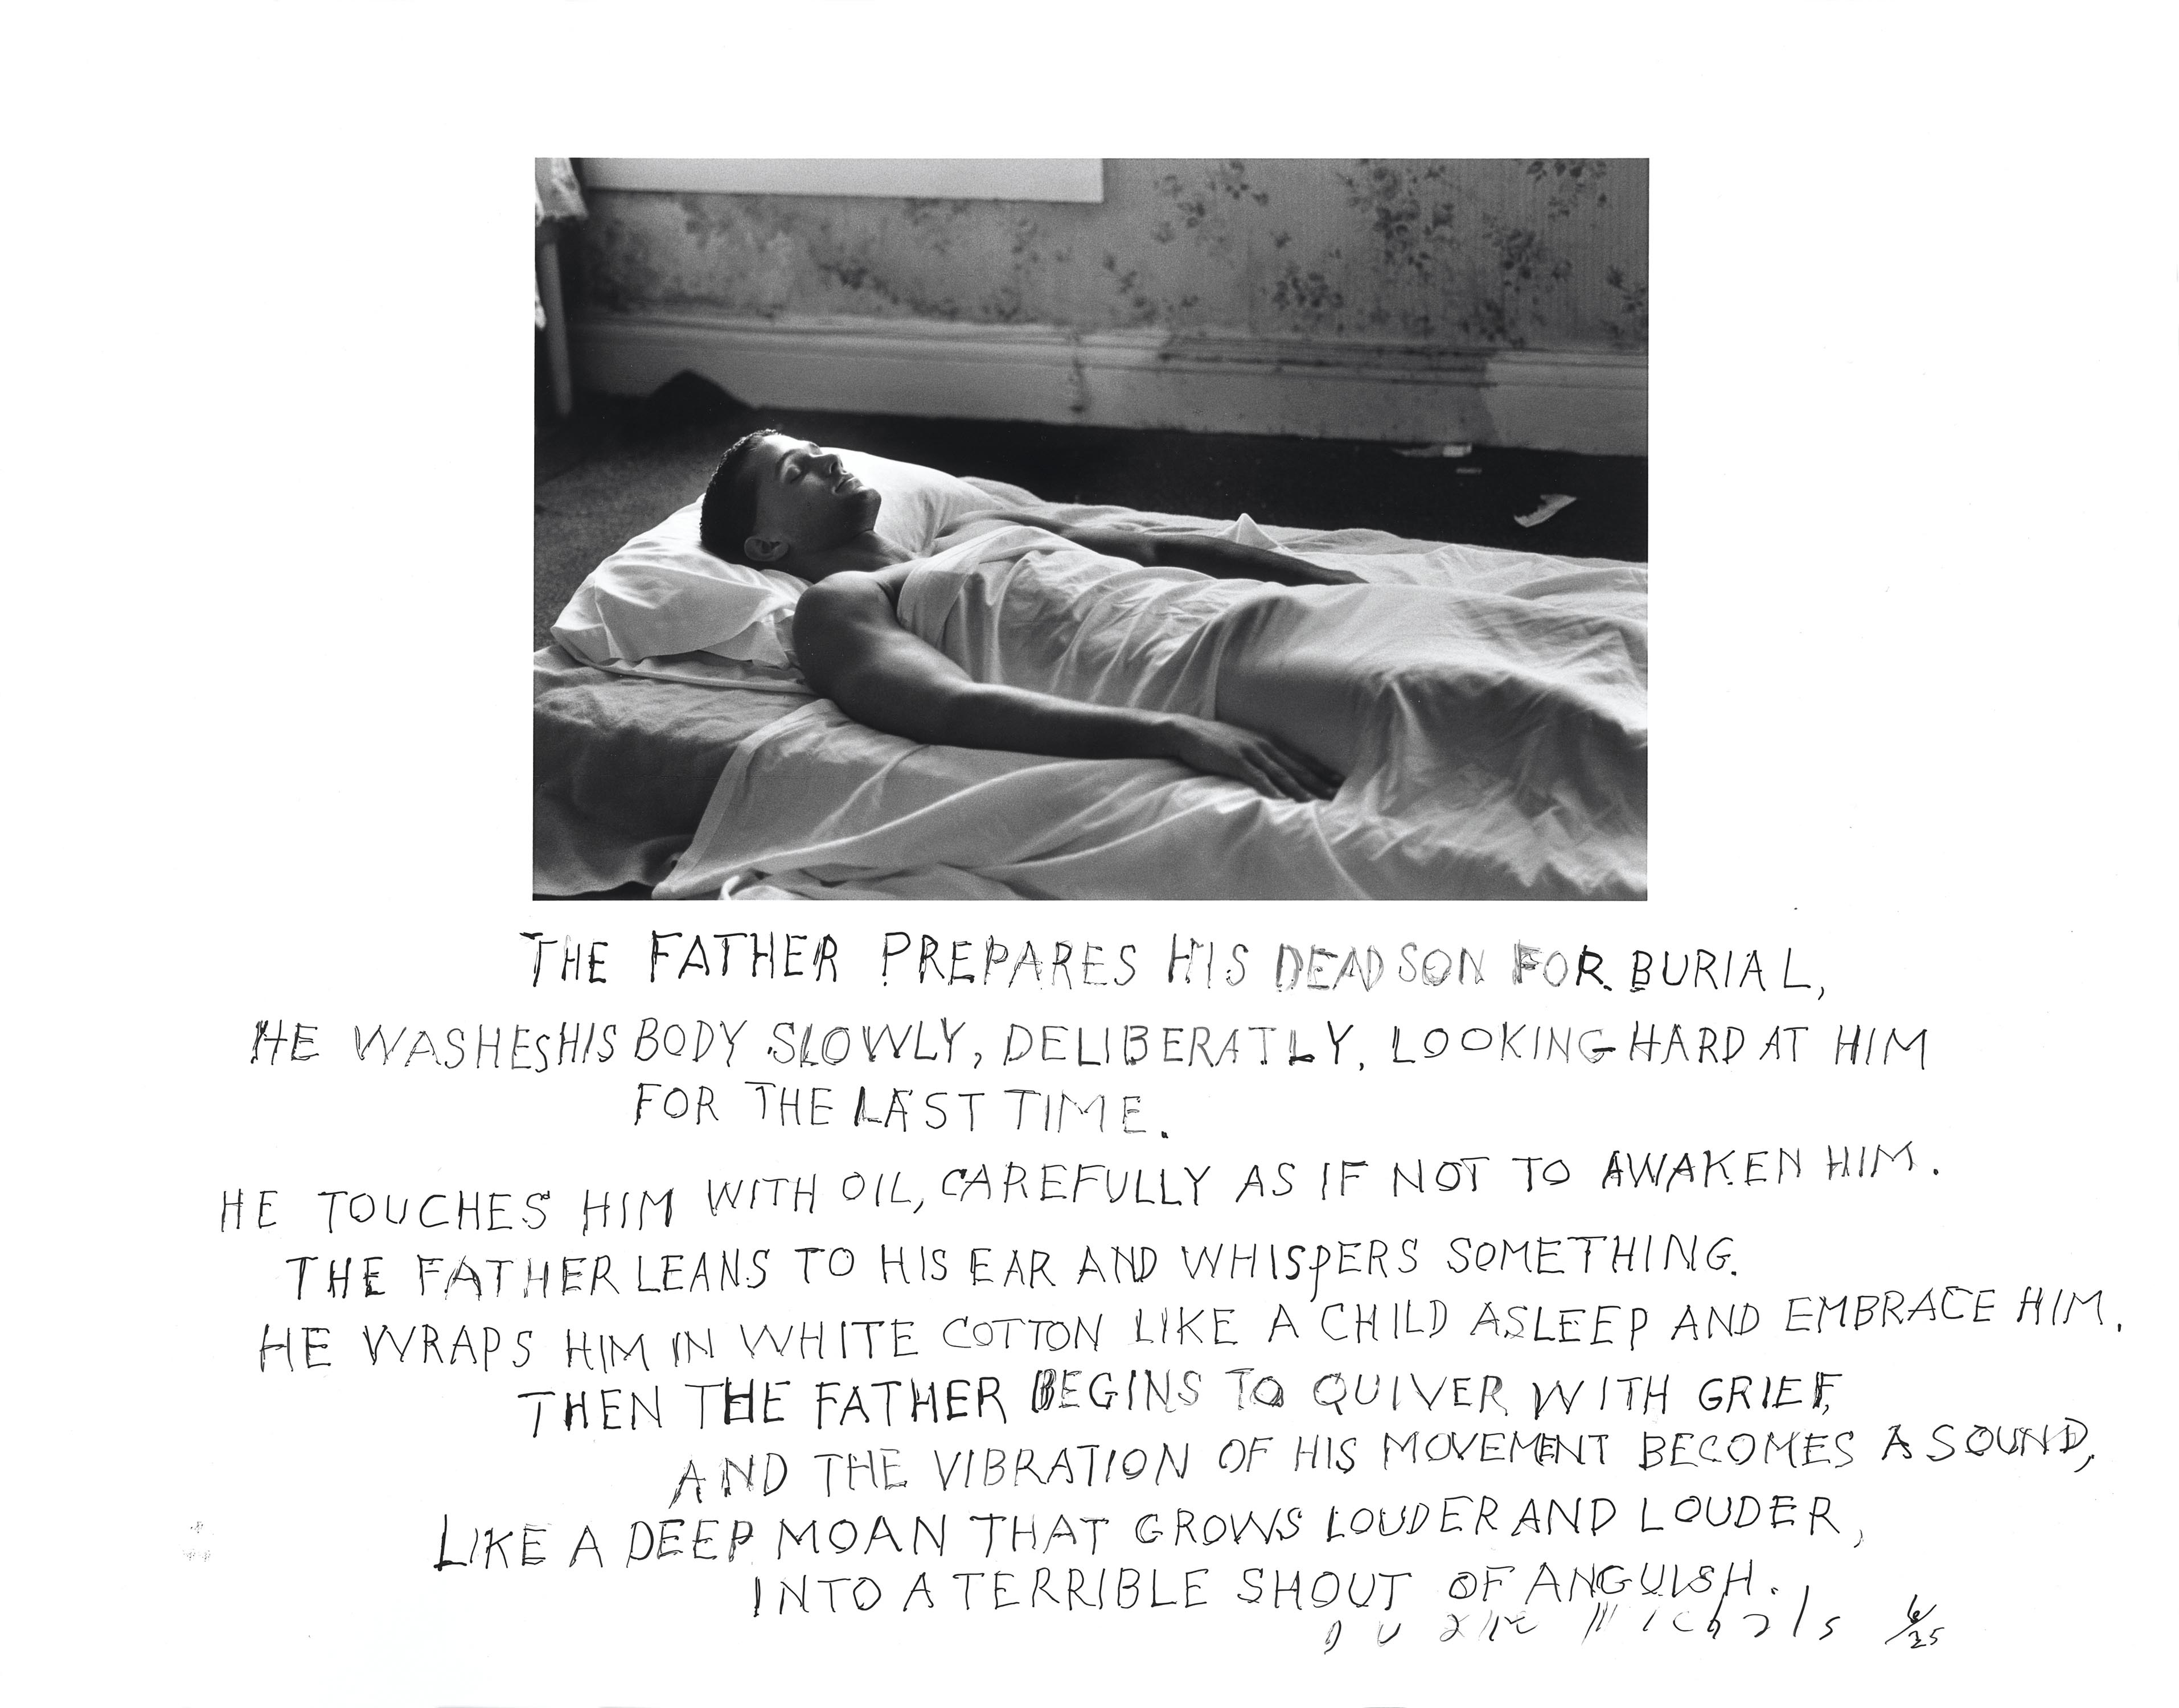 The Father Prepares His Dead Son for Burial, 1991, gelatin silver print with hand-applied text, 4 1/2 by 7 inches (image); 11 by 14 inches (paper) ©Duane Michals. Courtesy of DC Moore Gallery, New York.